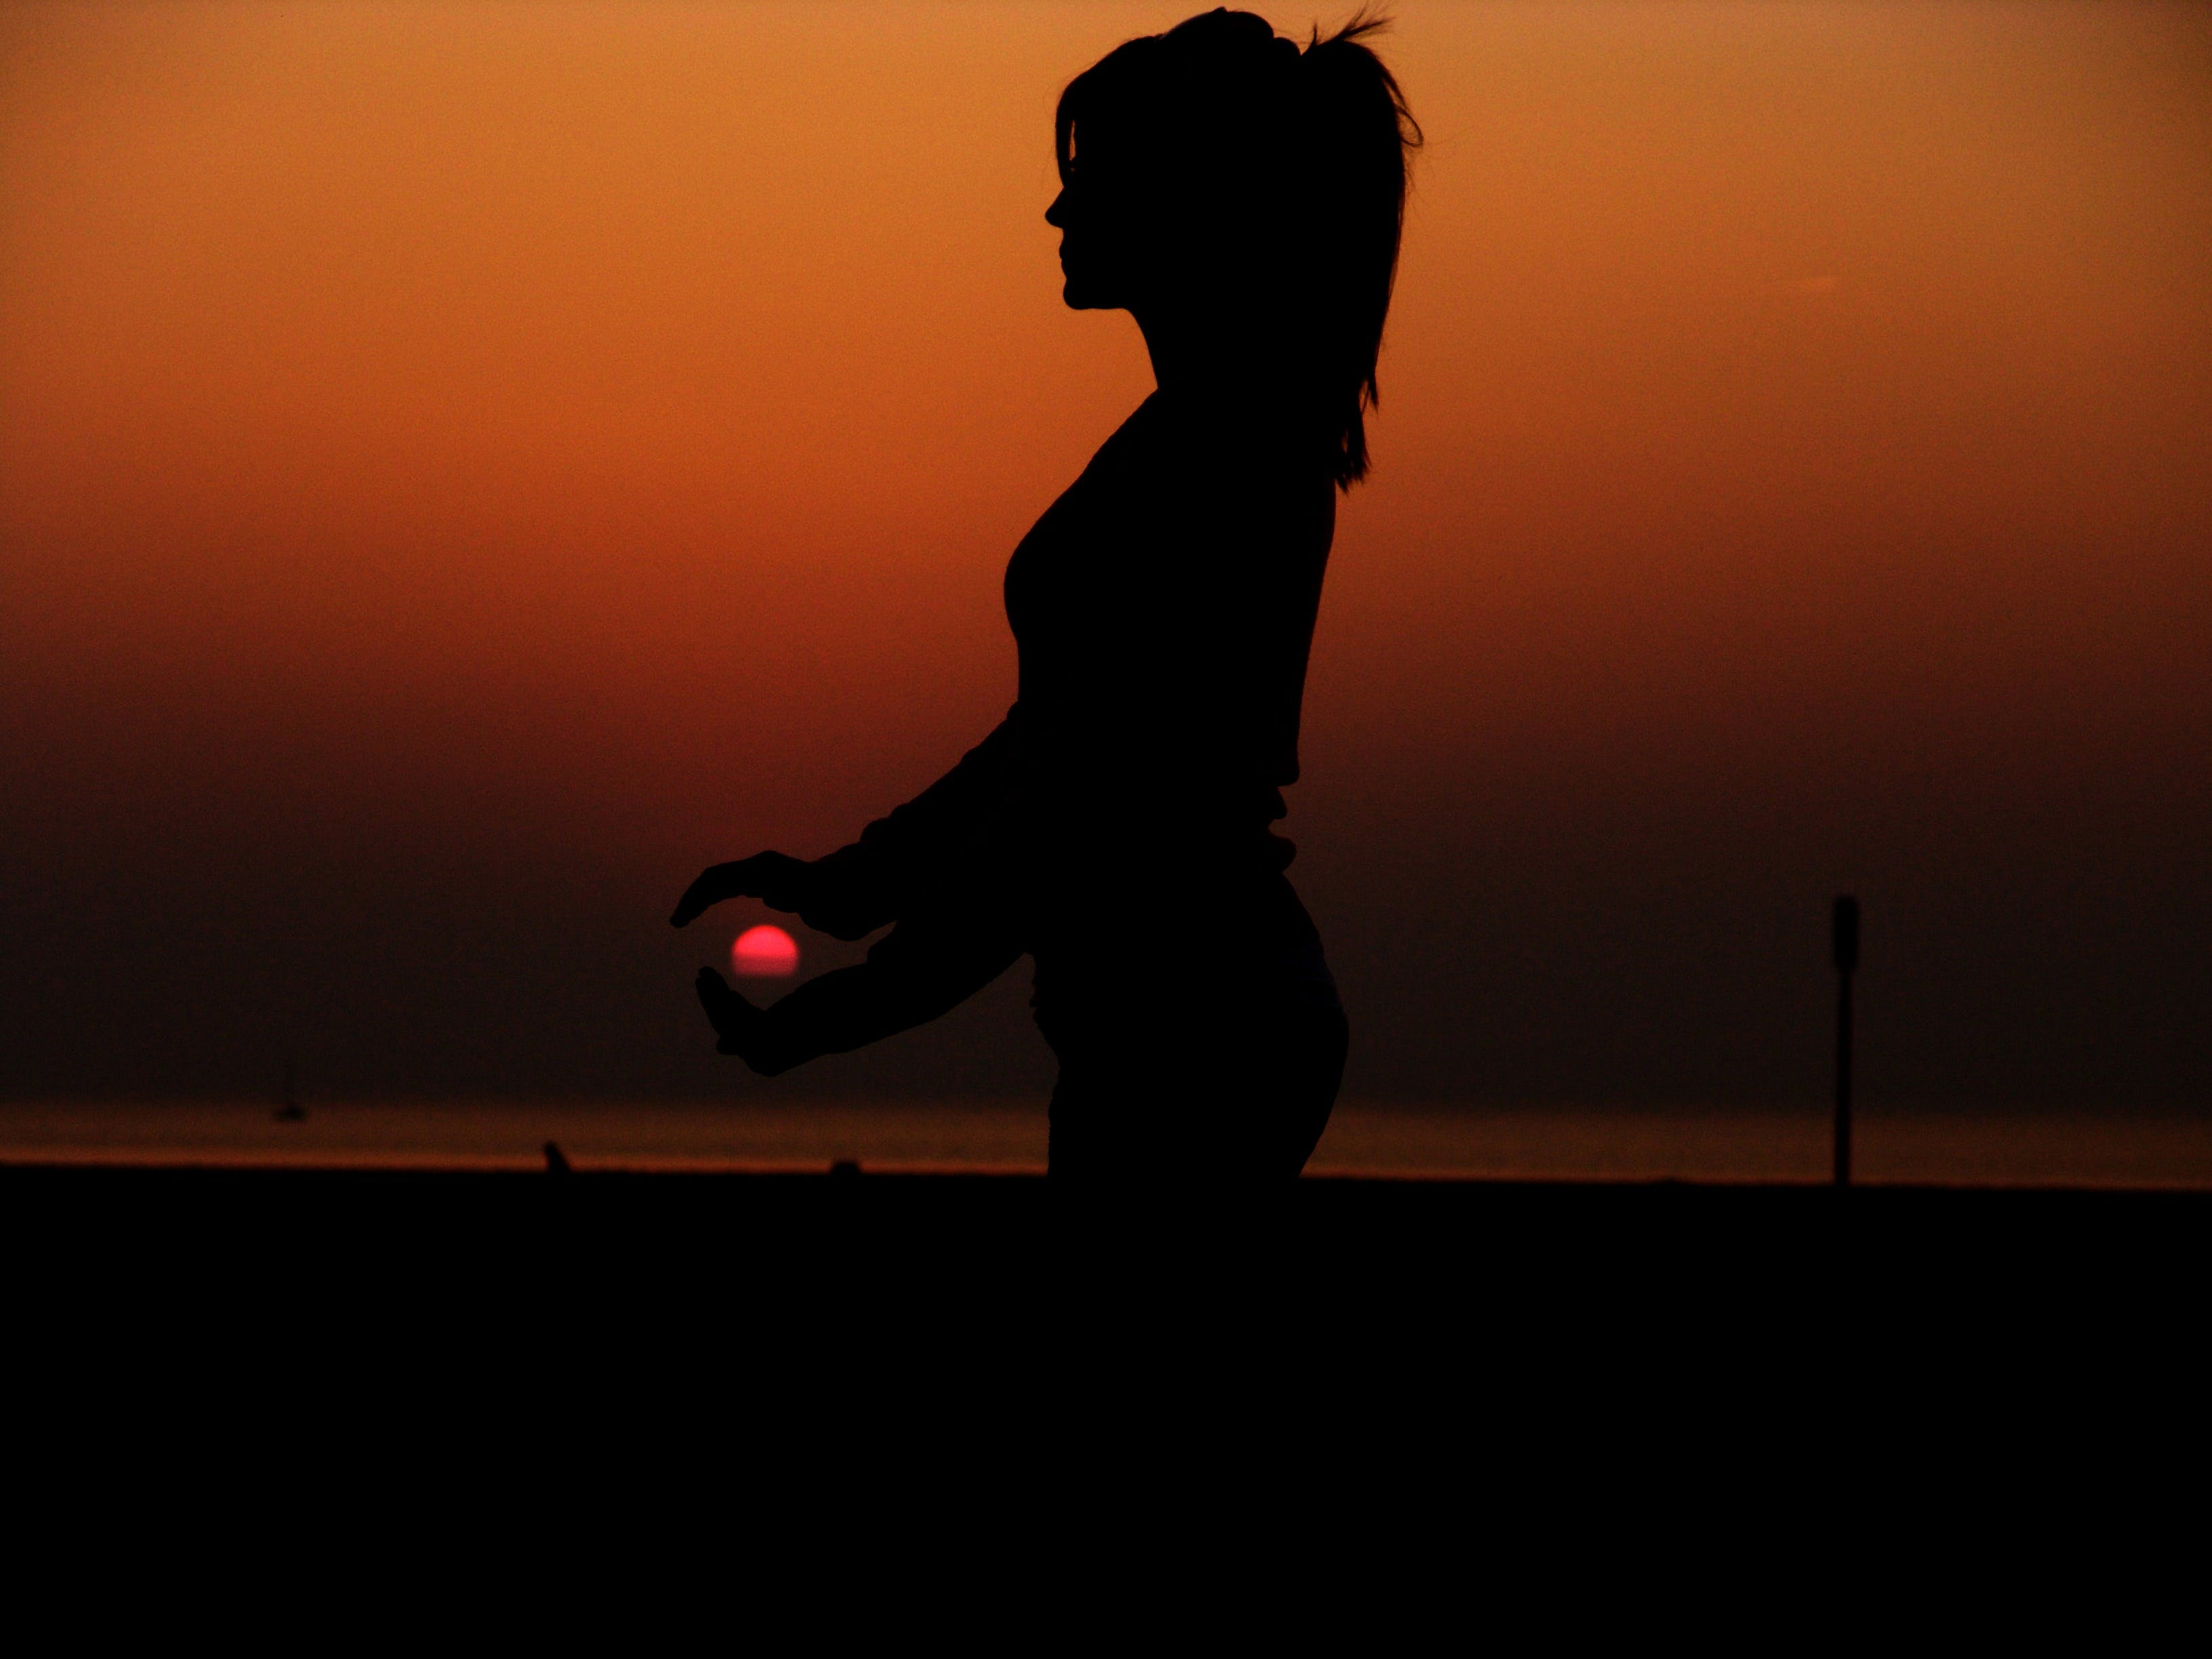 Force Perspective Photography of a Silhouette of a Woman Holding the Sun